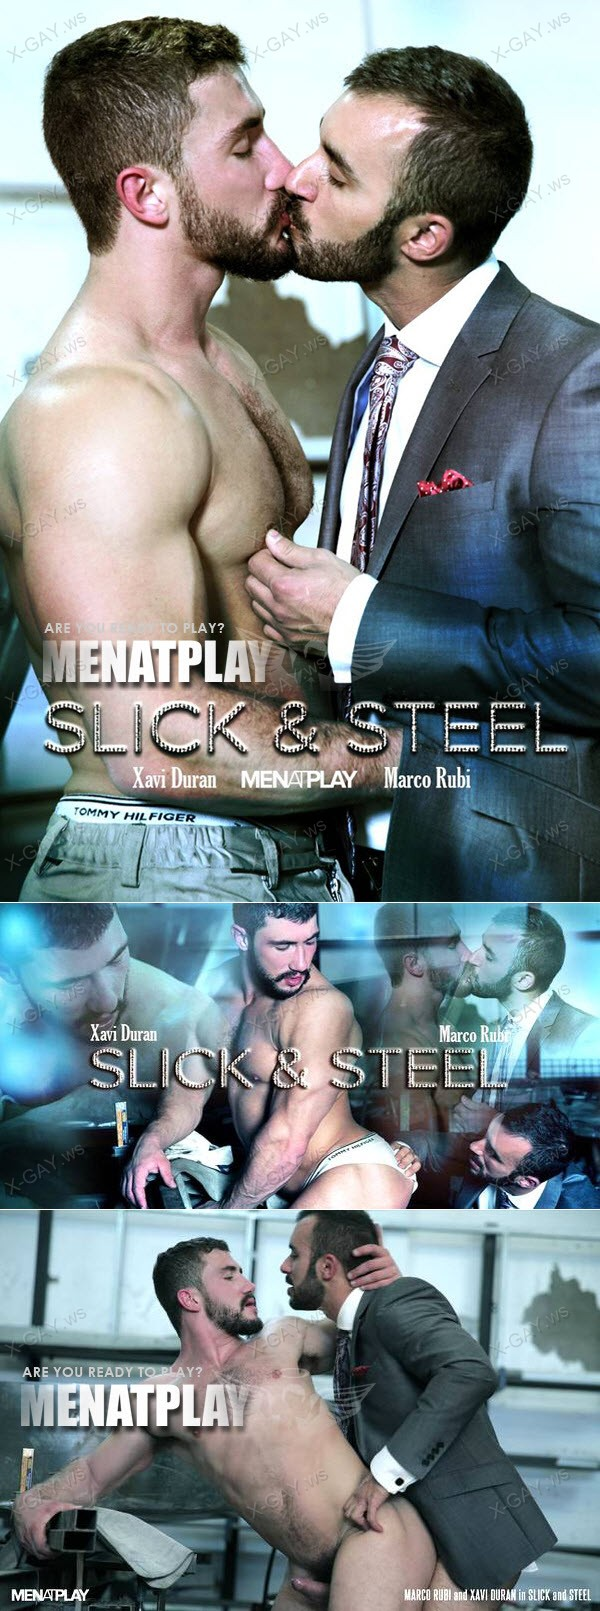 ManAtPlay: Slick And Steel (Marco Rubi, Xavi Duran)